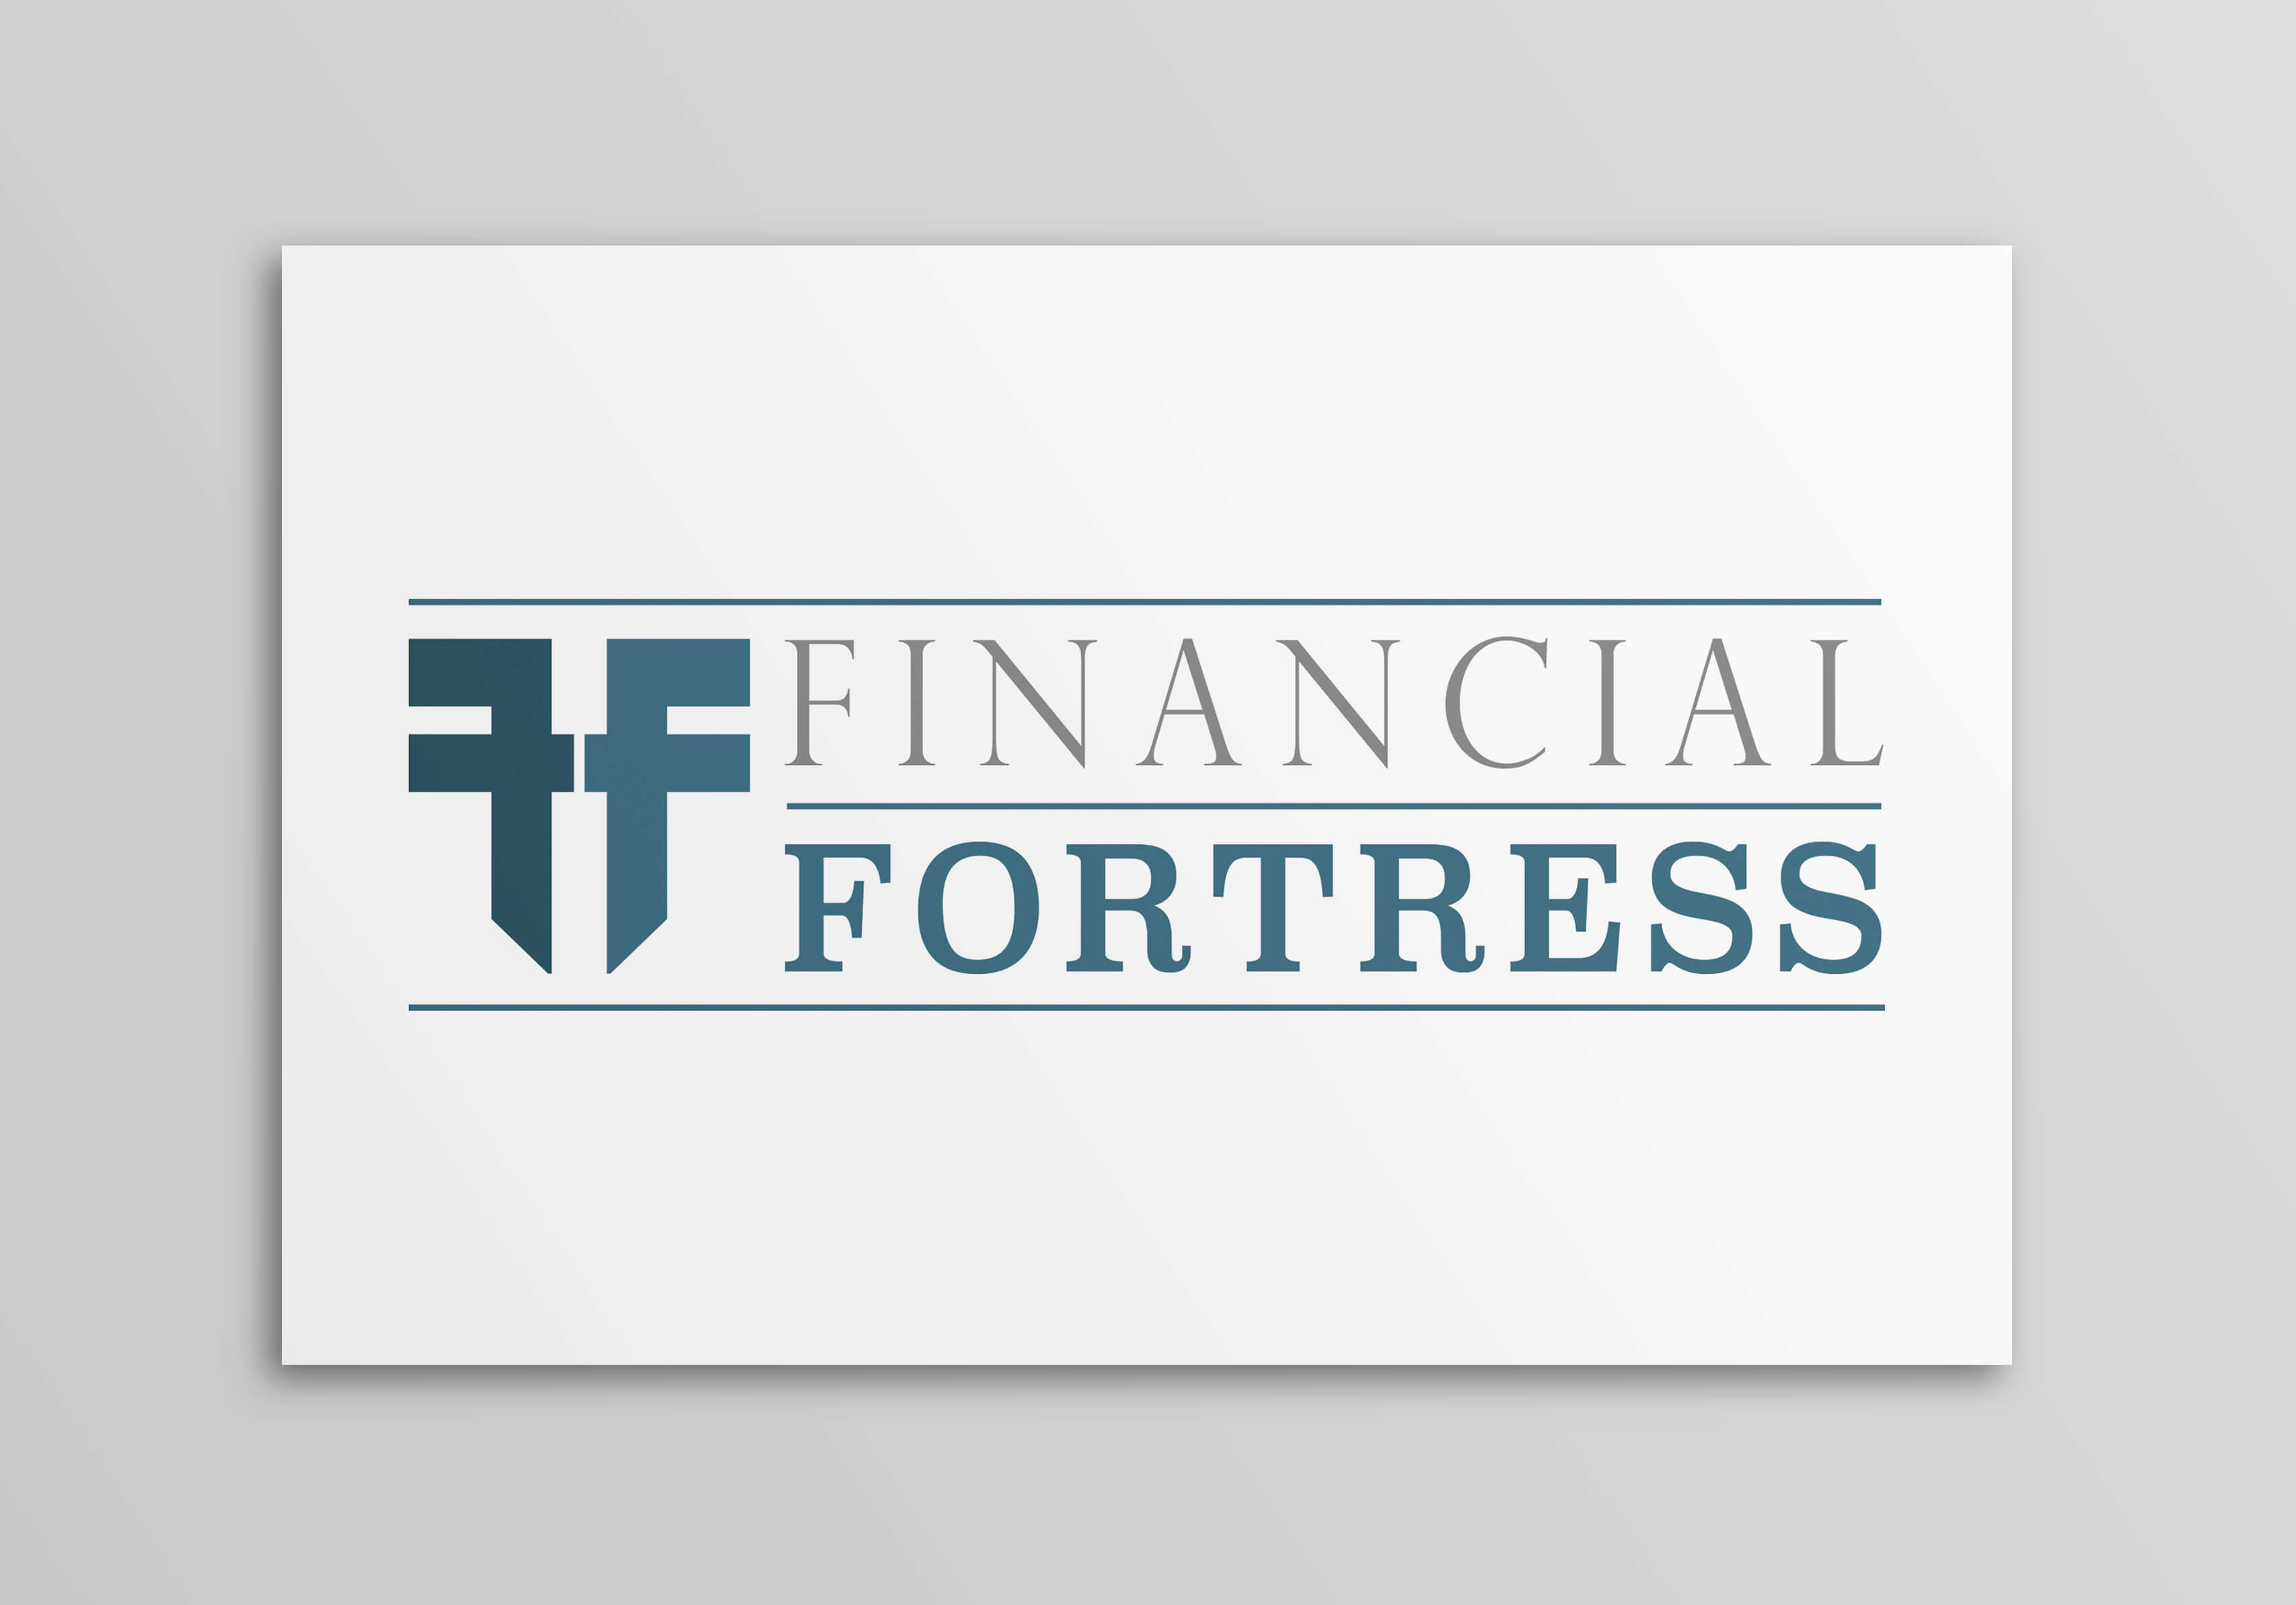 Financial Fortress Branding